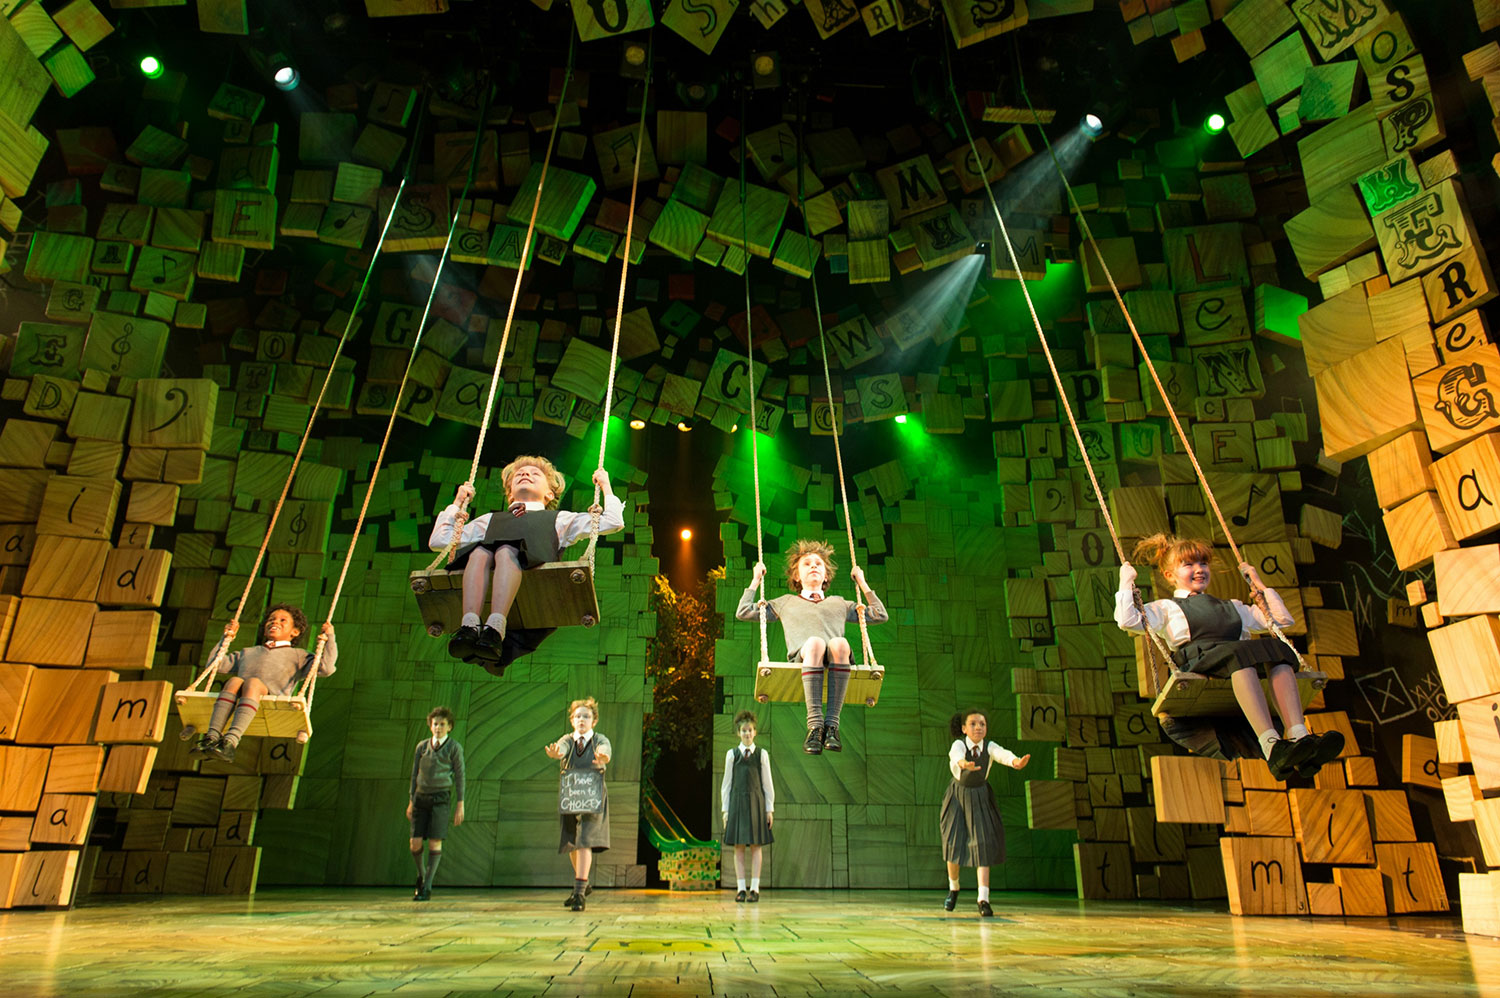 Matilda The Musical will make its debut in Singapore from 21 February 2019